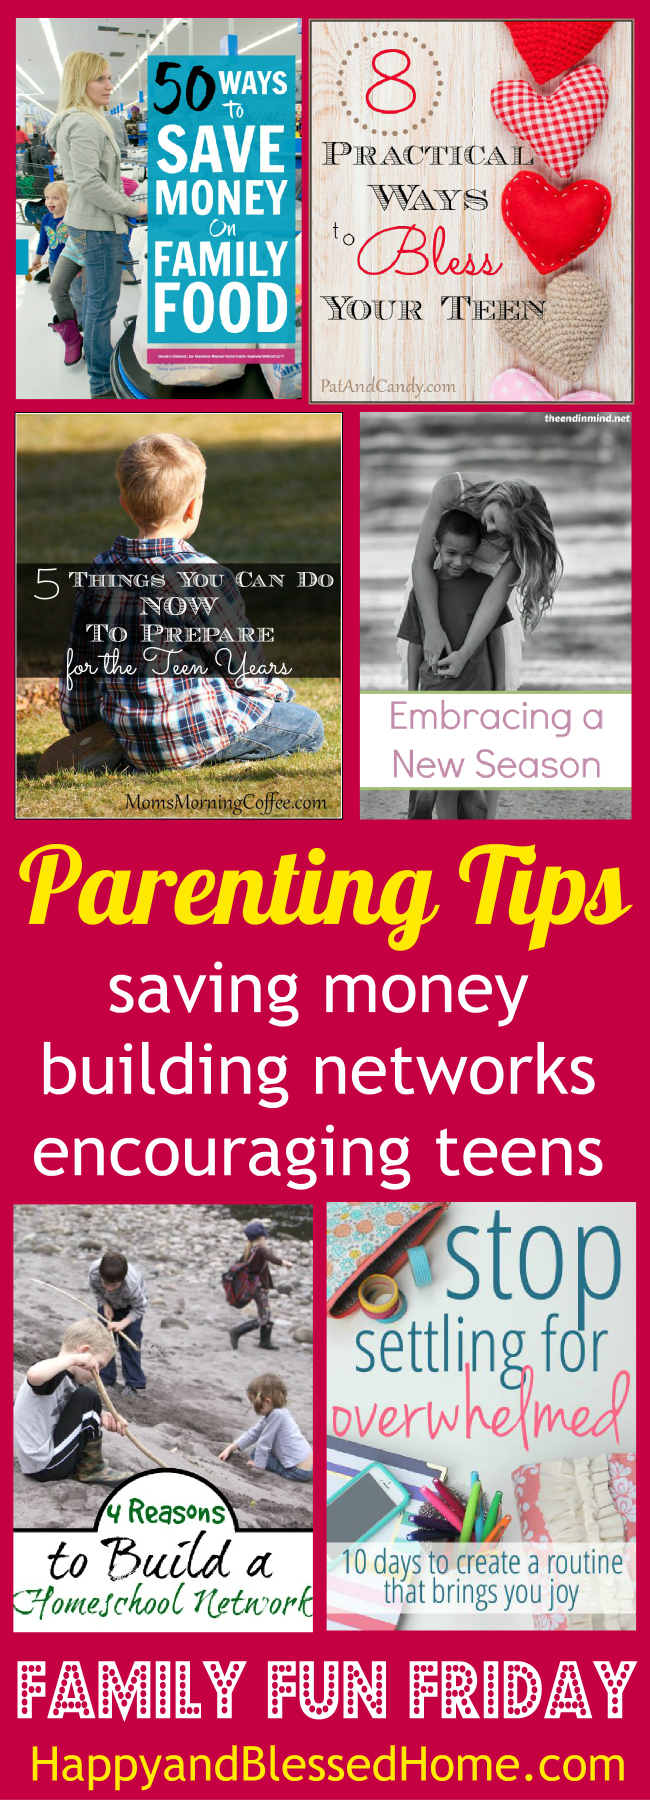 Parenting Tips you can use that will help you save money, build networks and encourage tweens from HappyandBlessedHome.com